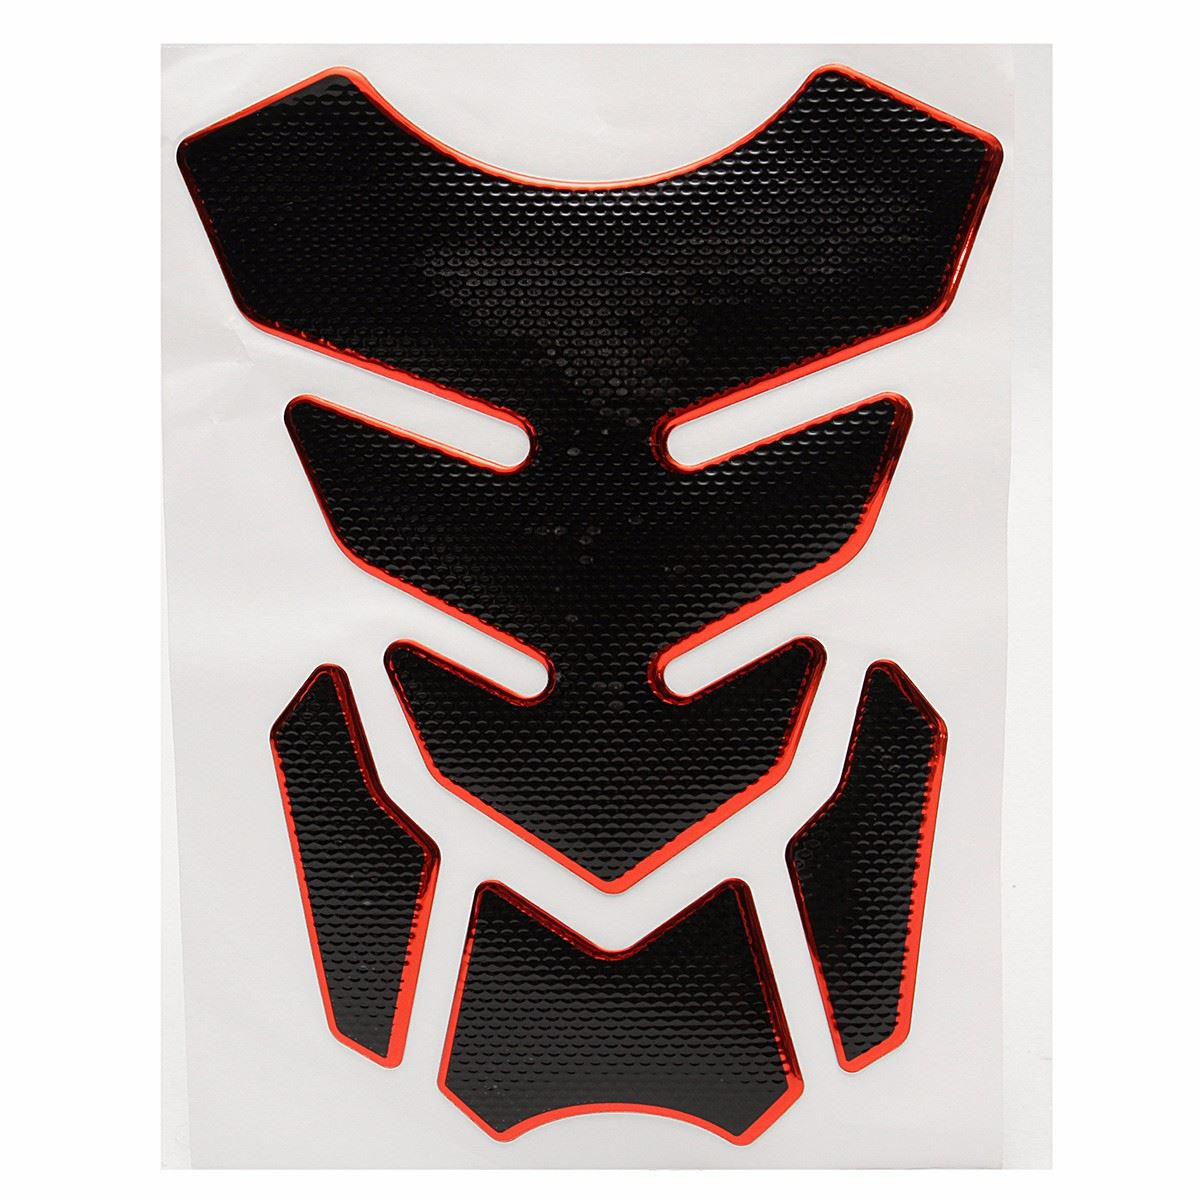 Bike stickers design for cbr 150 - Universal Red Motorcycle 3d Rubber Sticker Gas Fuel Oil Tank Pad Protector Cover Decals China